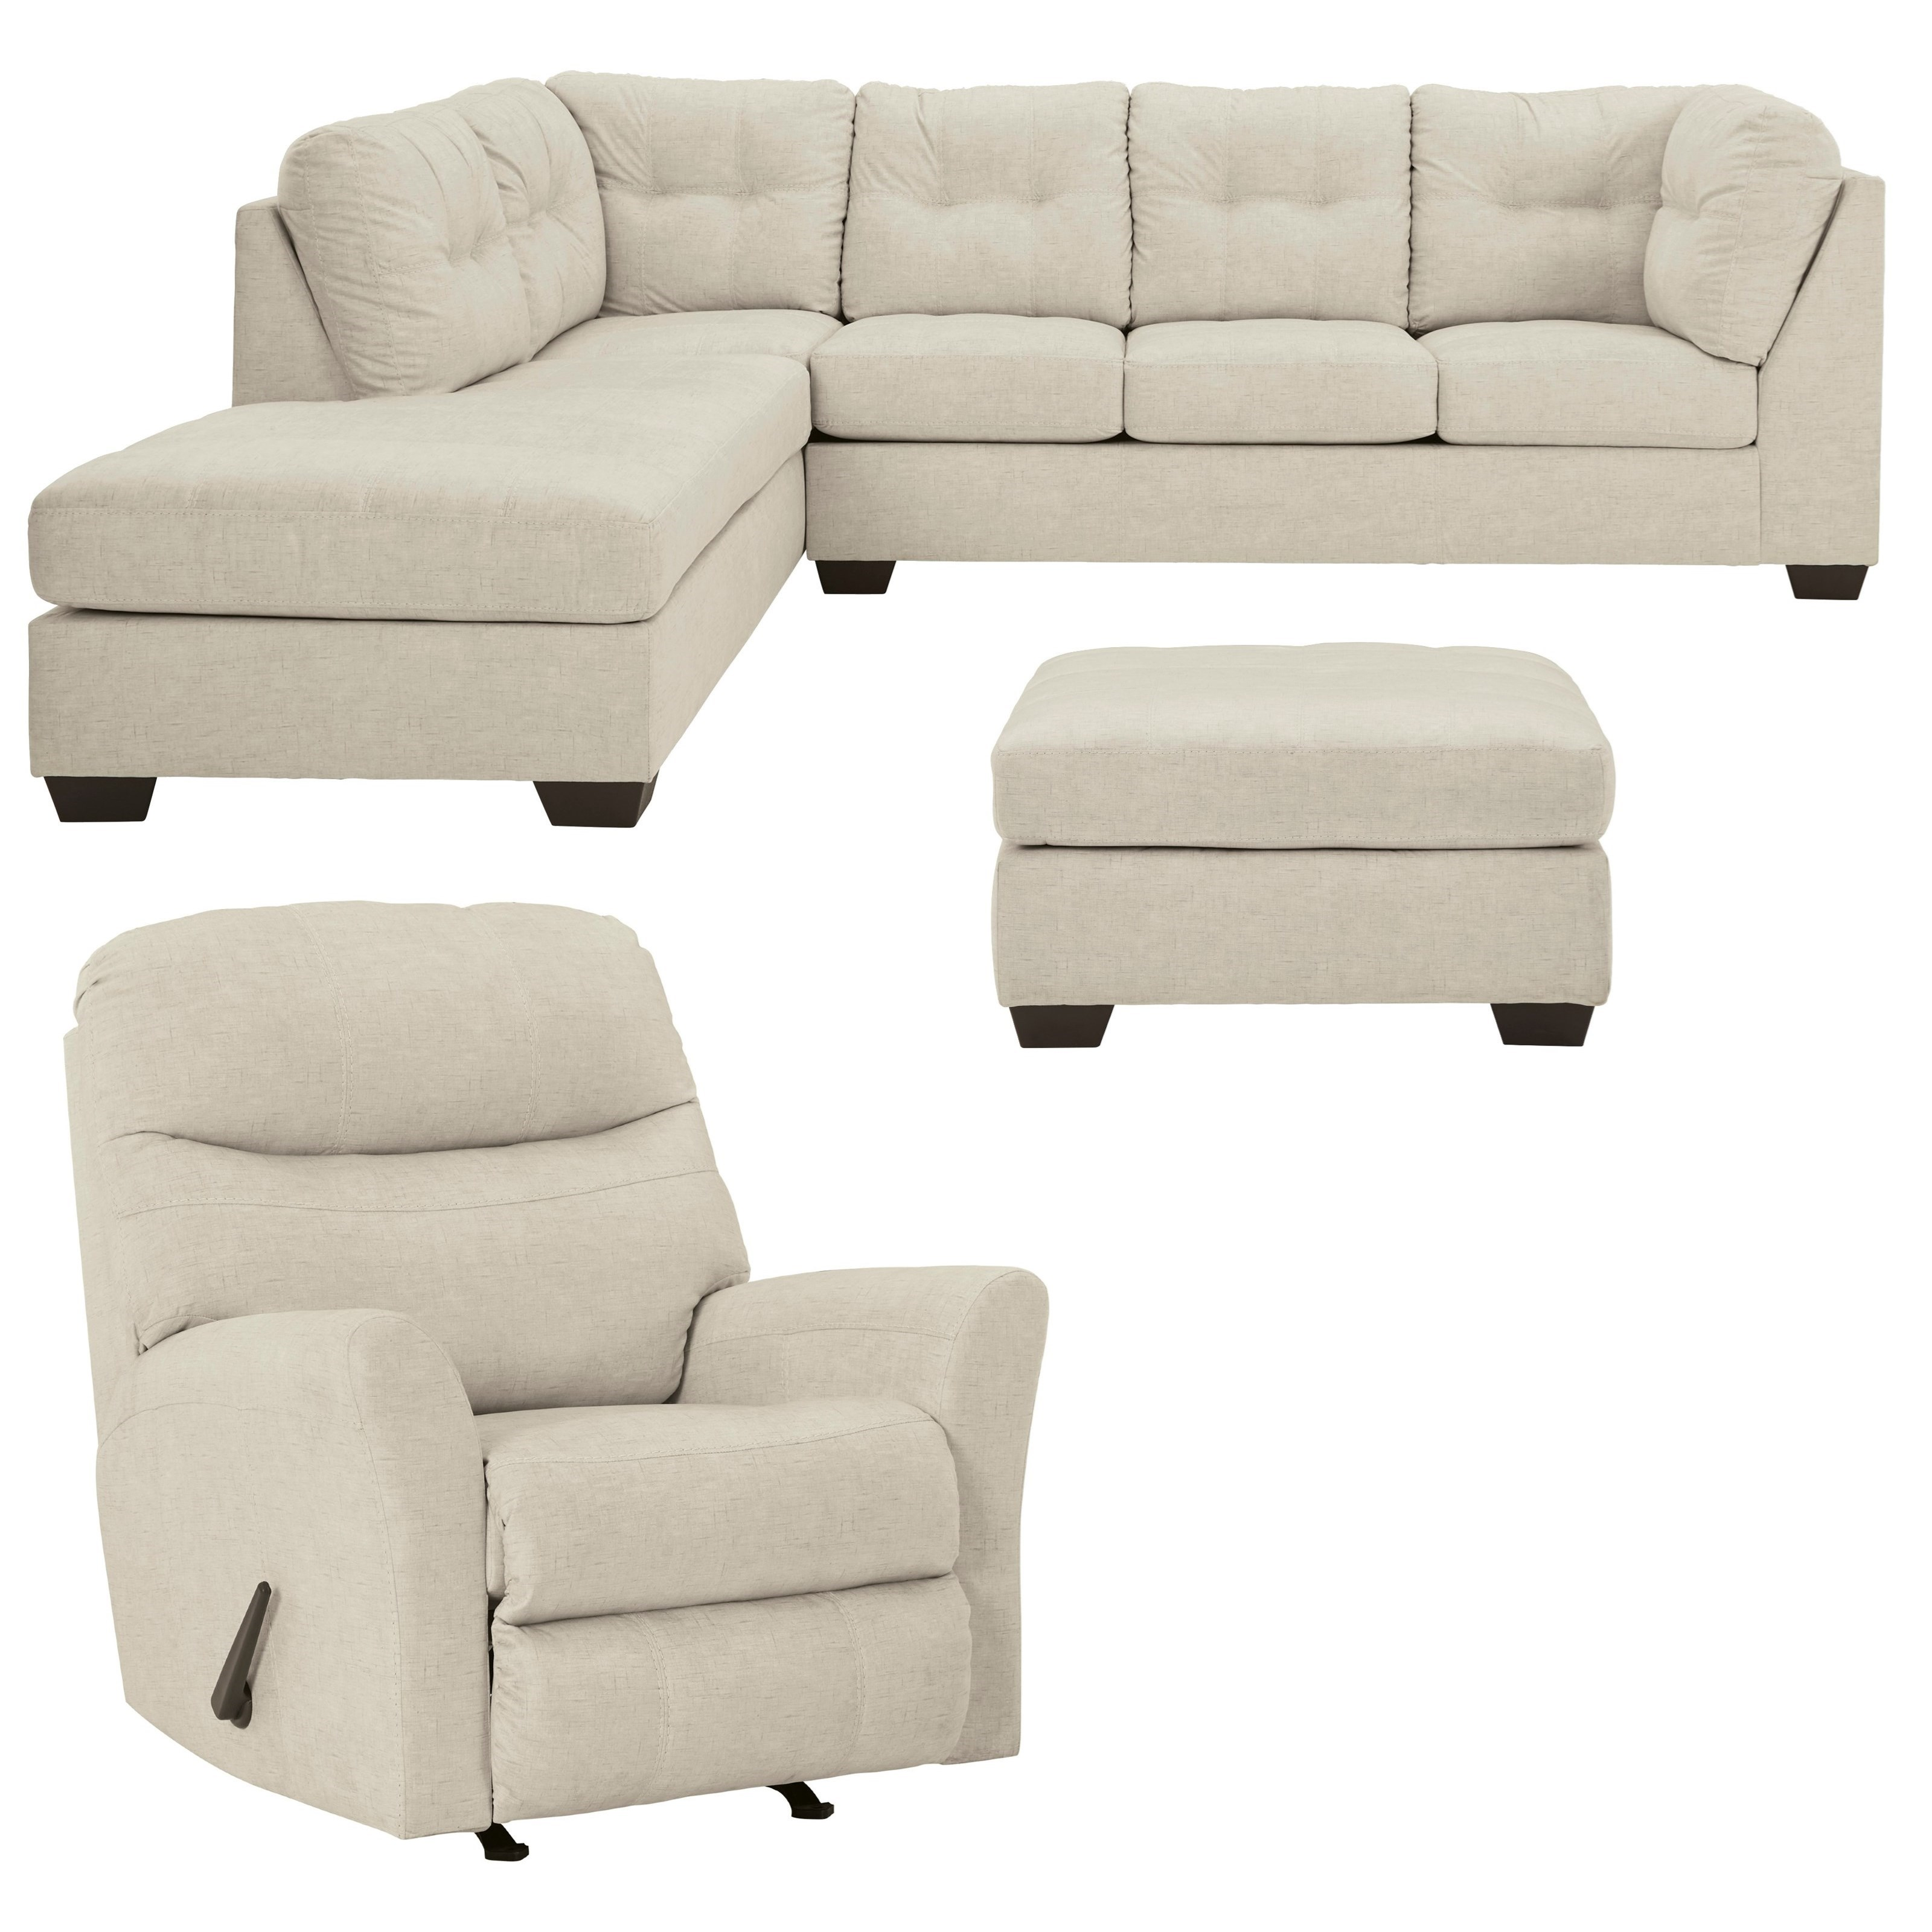 Falkirk Living Room Group by Benchcraft at Northeast Factory Direct